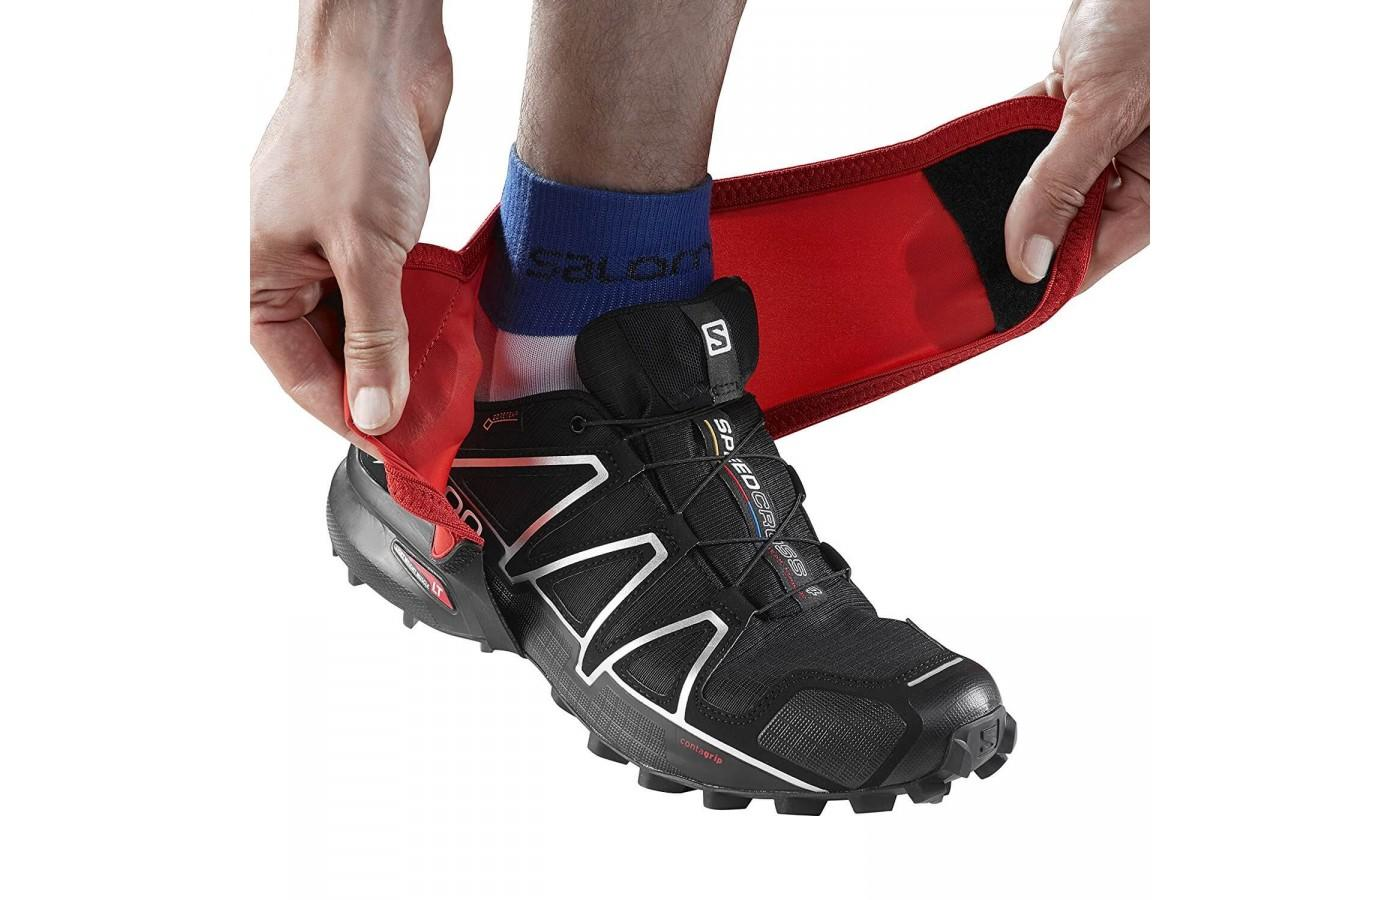 Runners appreciated that these gaiters easily fit over any shoes or hiking boots.